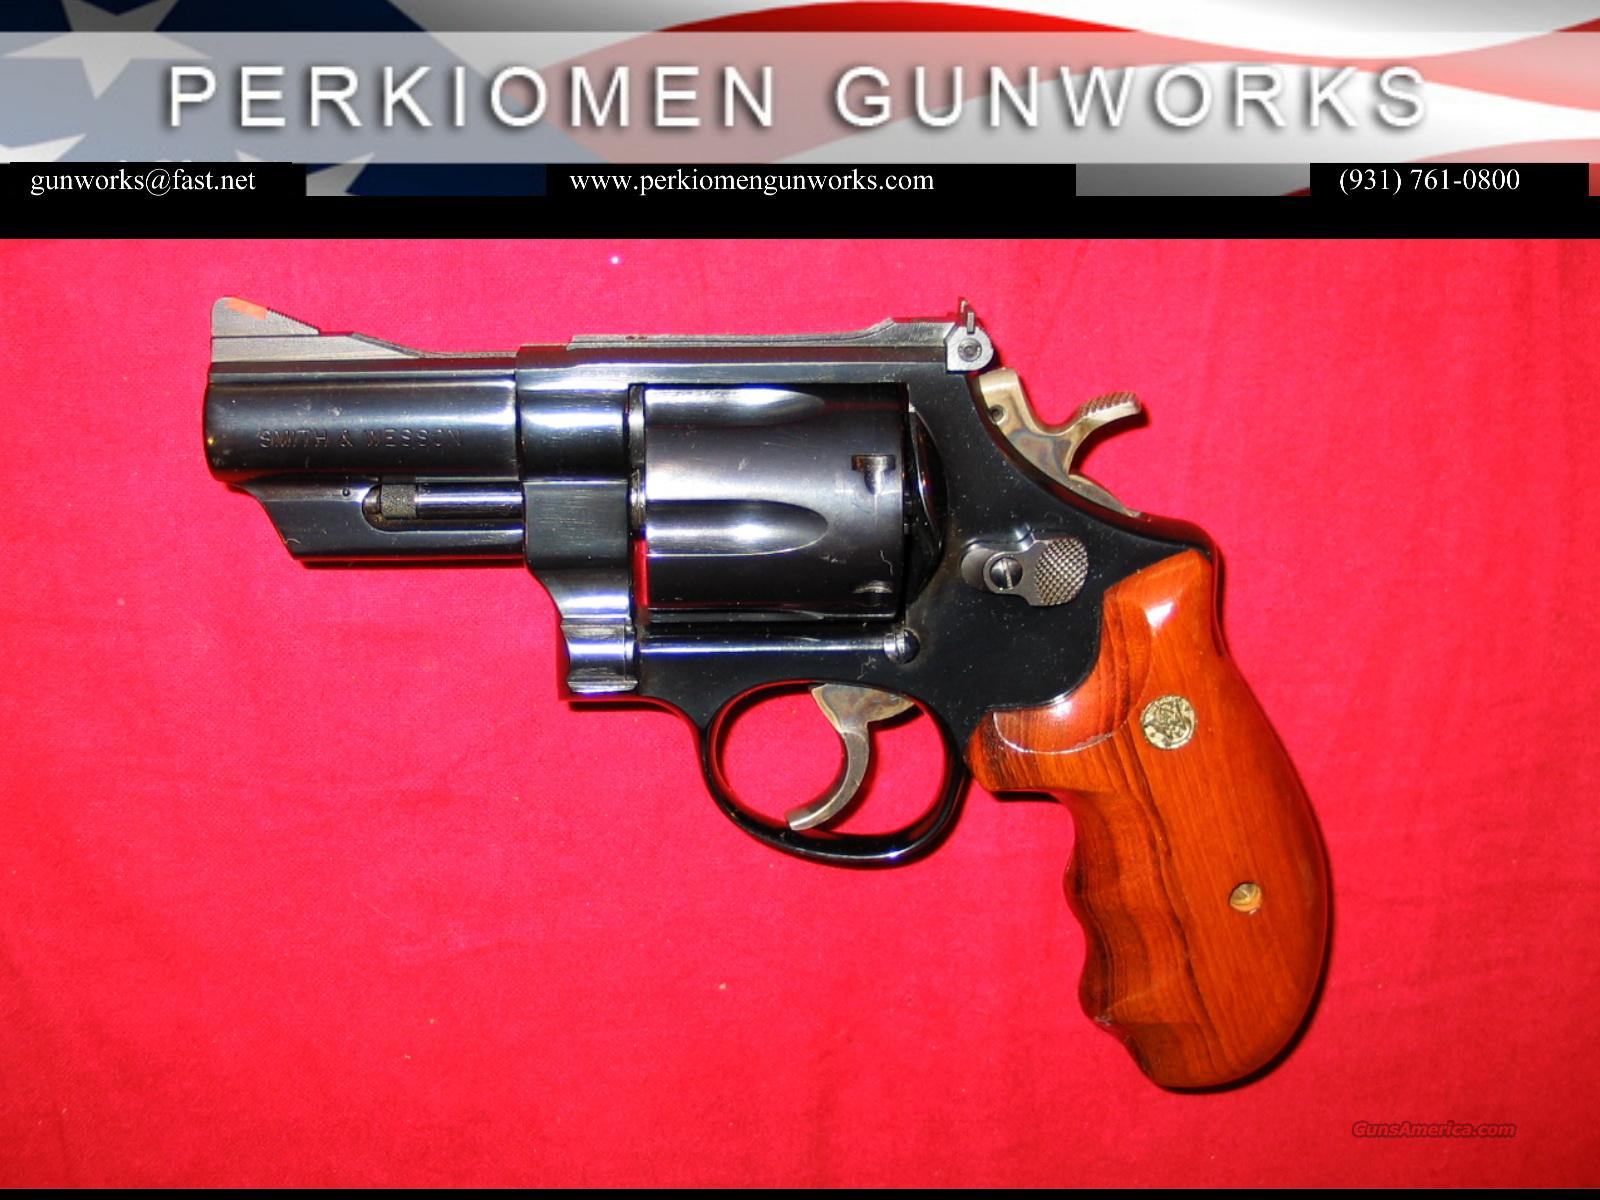 29, 3 INCH, Blued - 1 of 200, 1985 gun - Still New in Box!!  Guns > Pistols > Smith & Wesson Revolvers > Full Frame Revolver